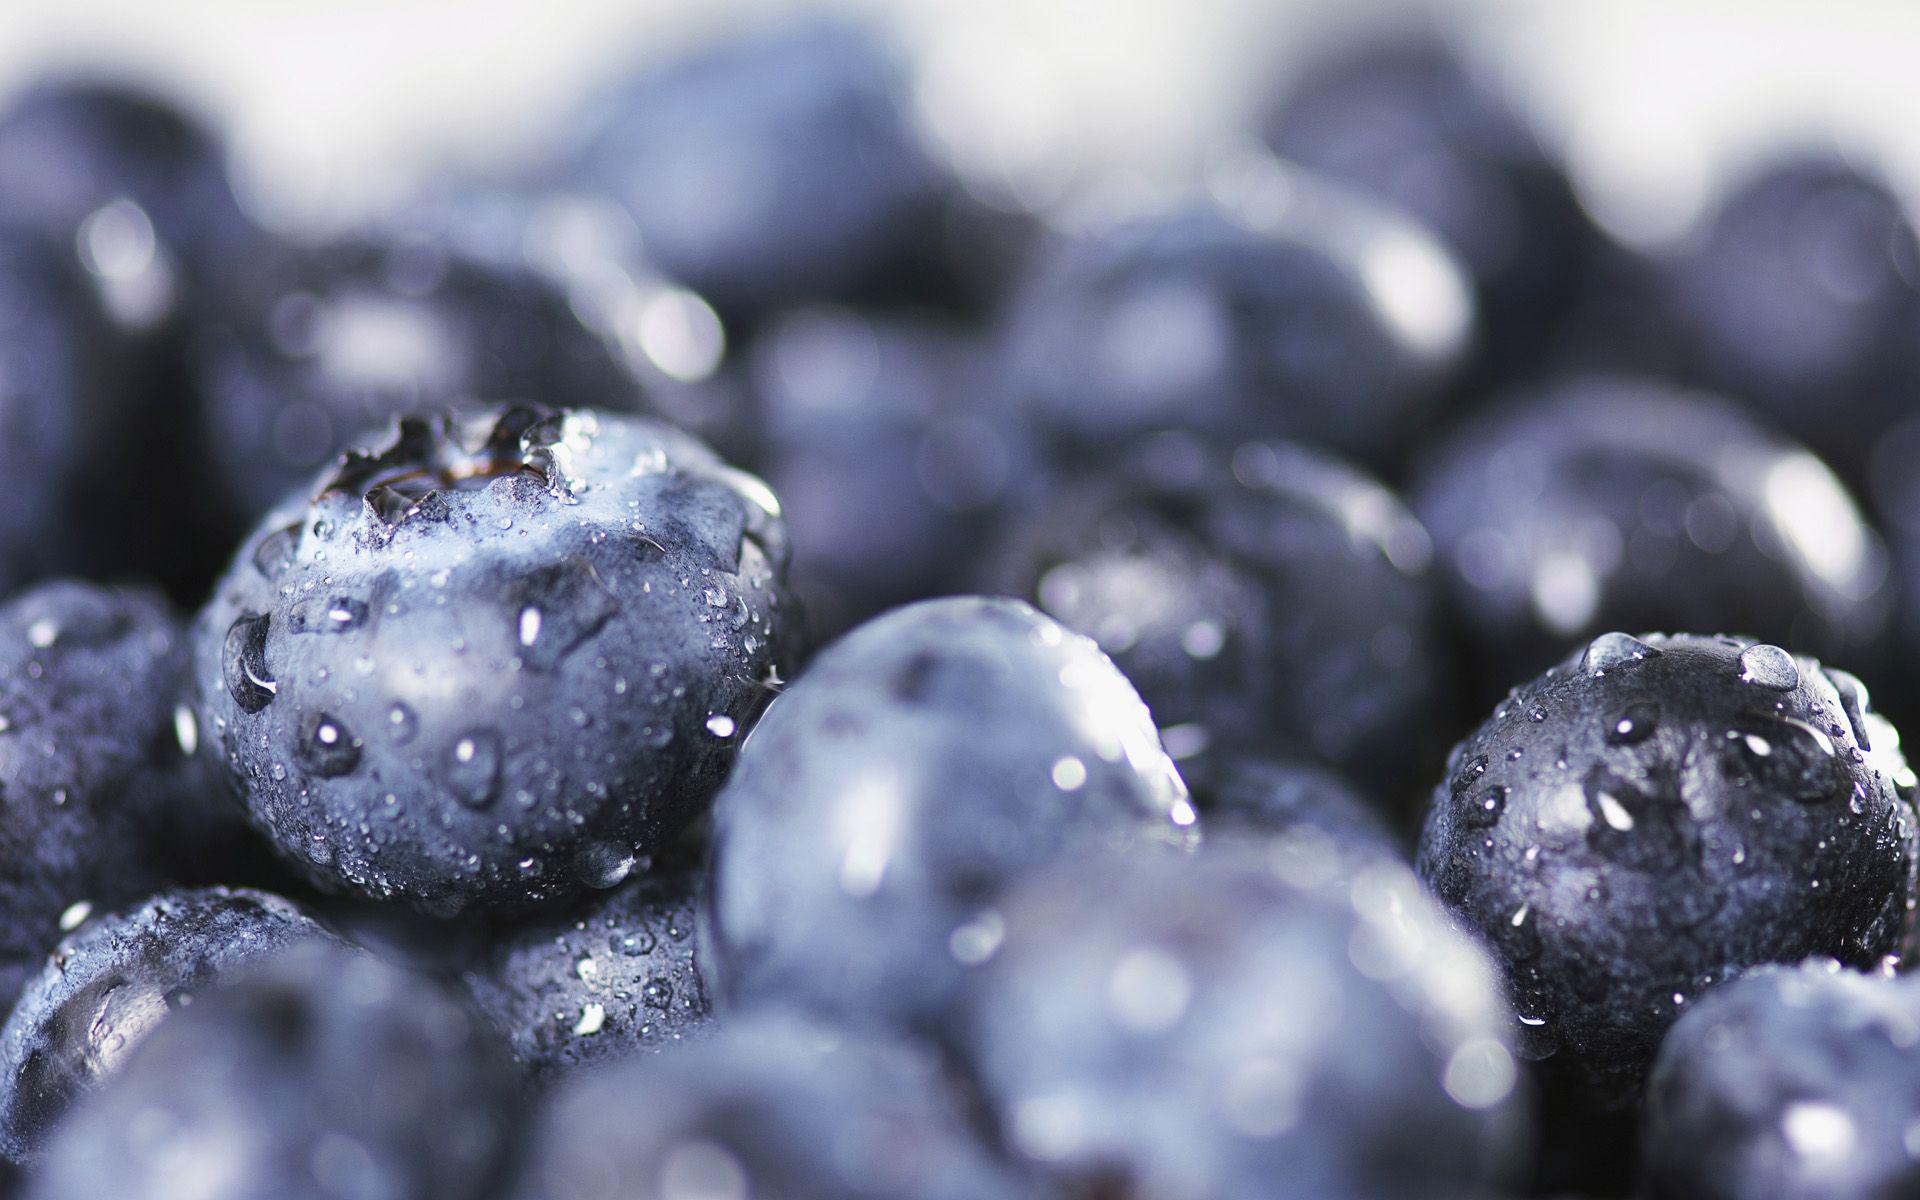 Fresh blueberries HQ Wallpaper